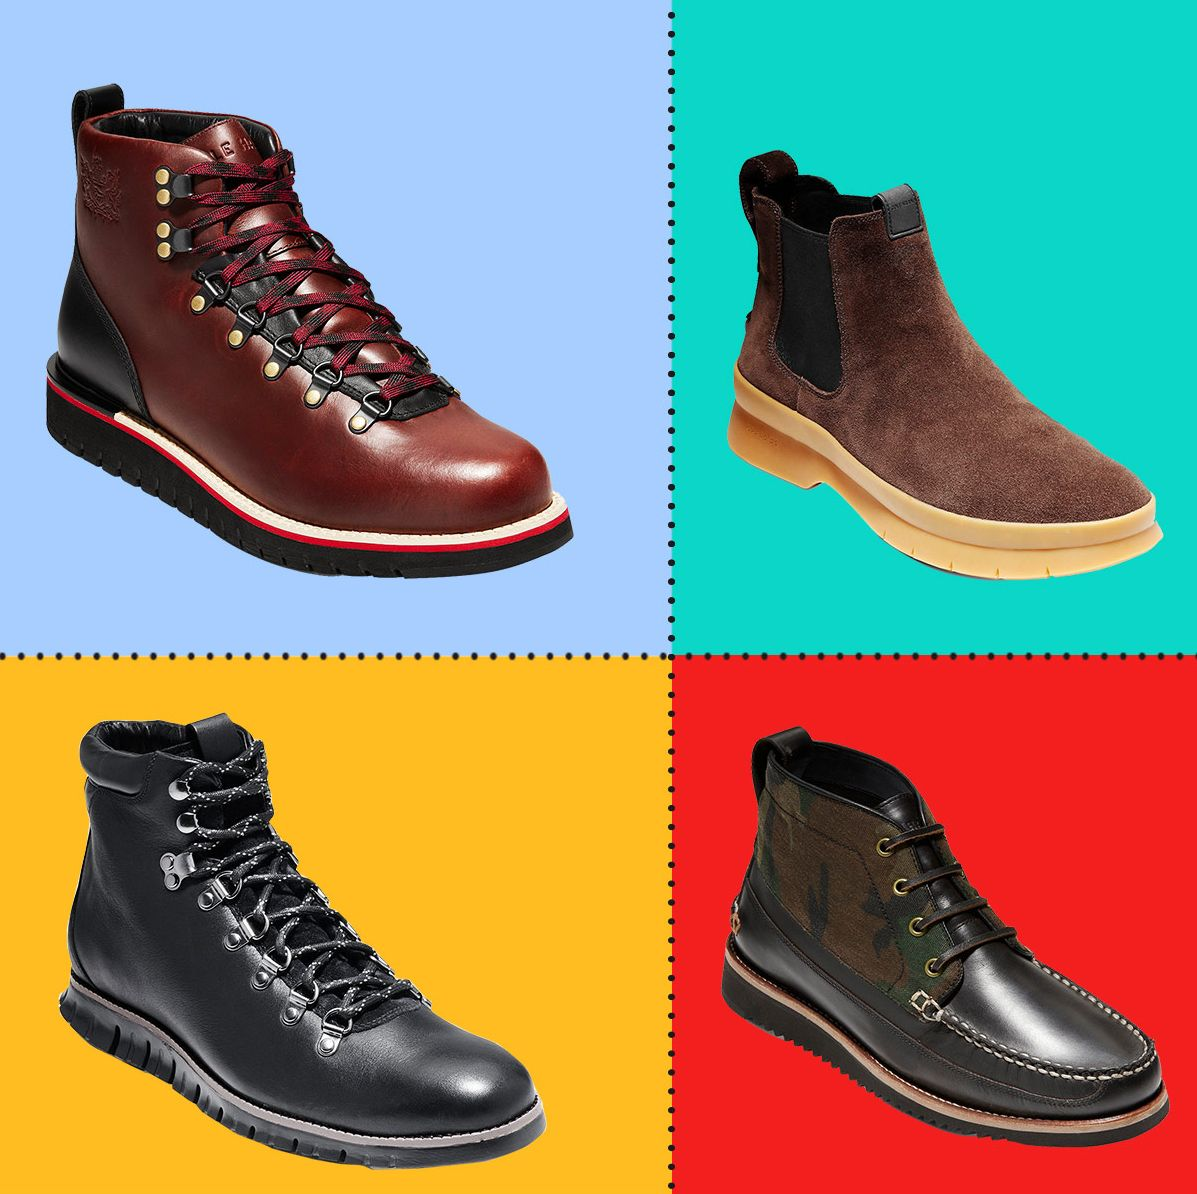 8 Cole Haan Men's Boots on Sale for